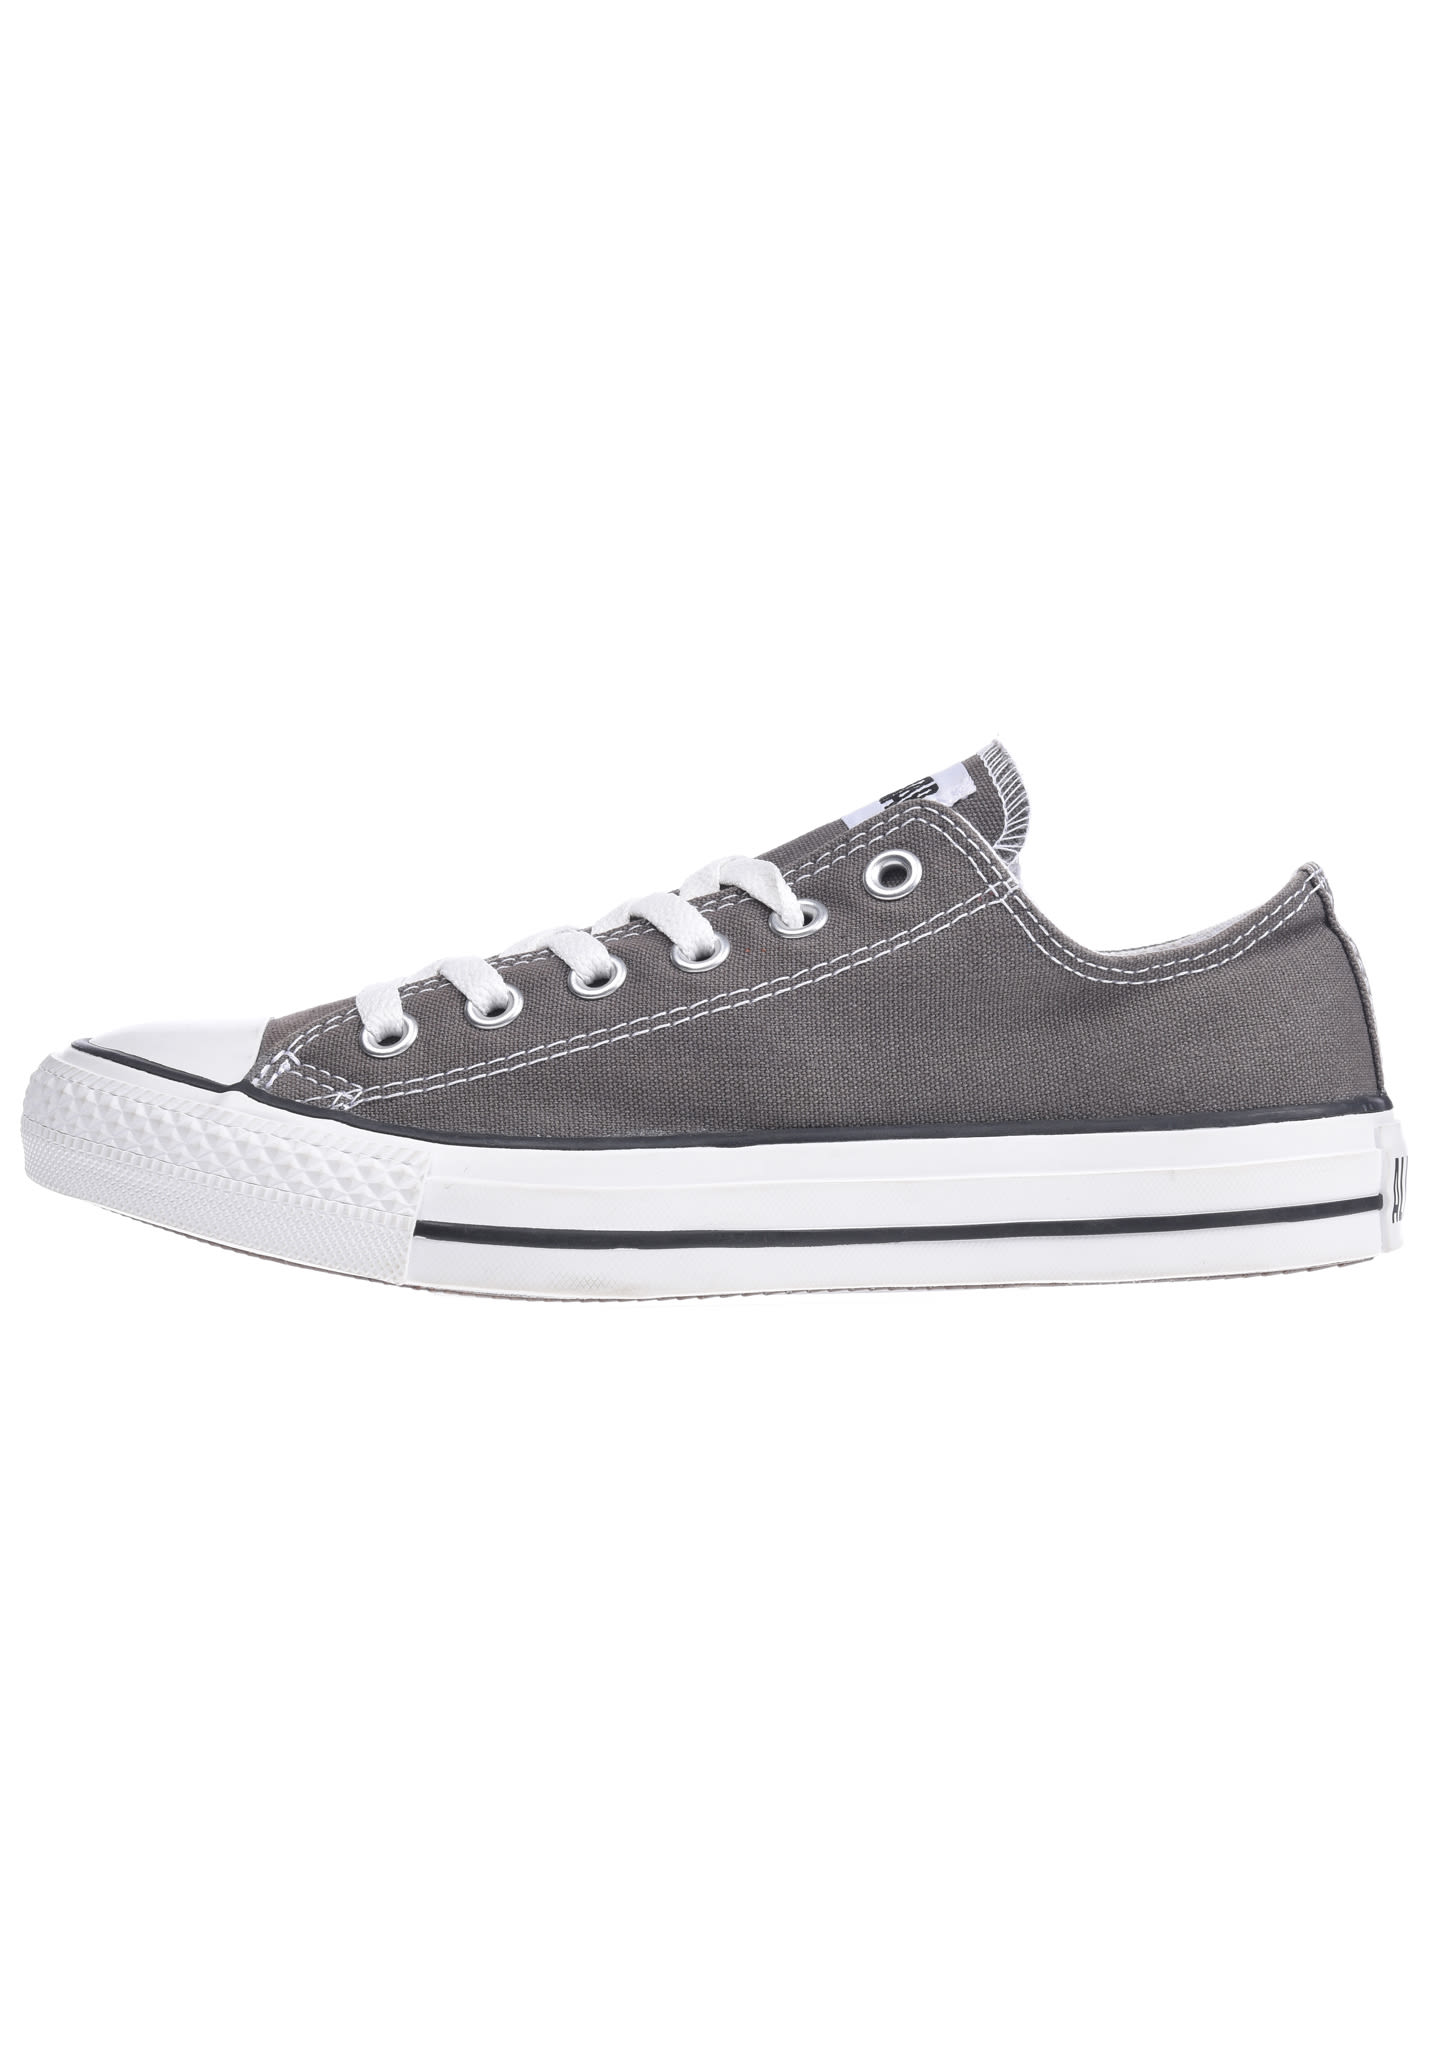 e8f610b00cd72 Converse Chuck Taylor All Star Seasonal Ox - Sneaker - Grau - Planet Sports